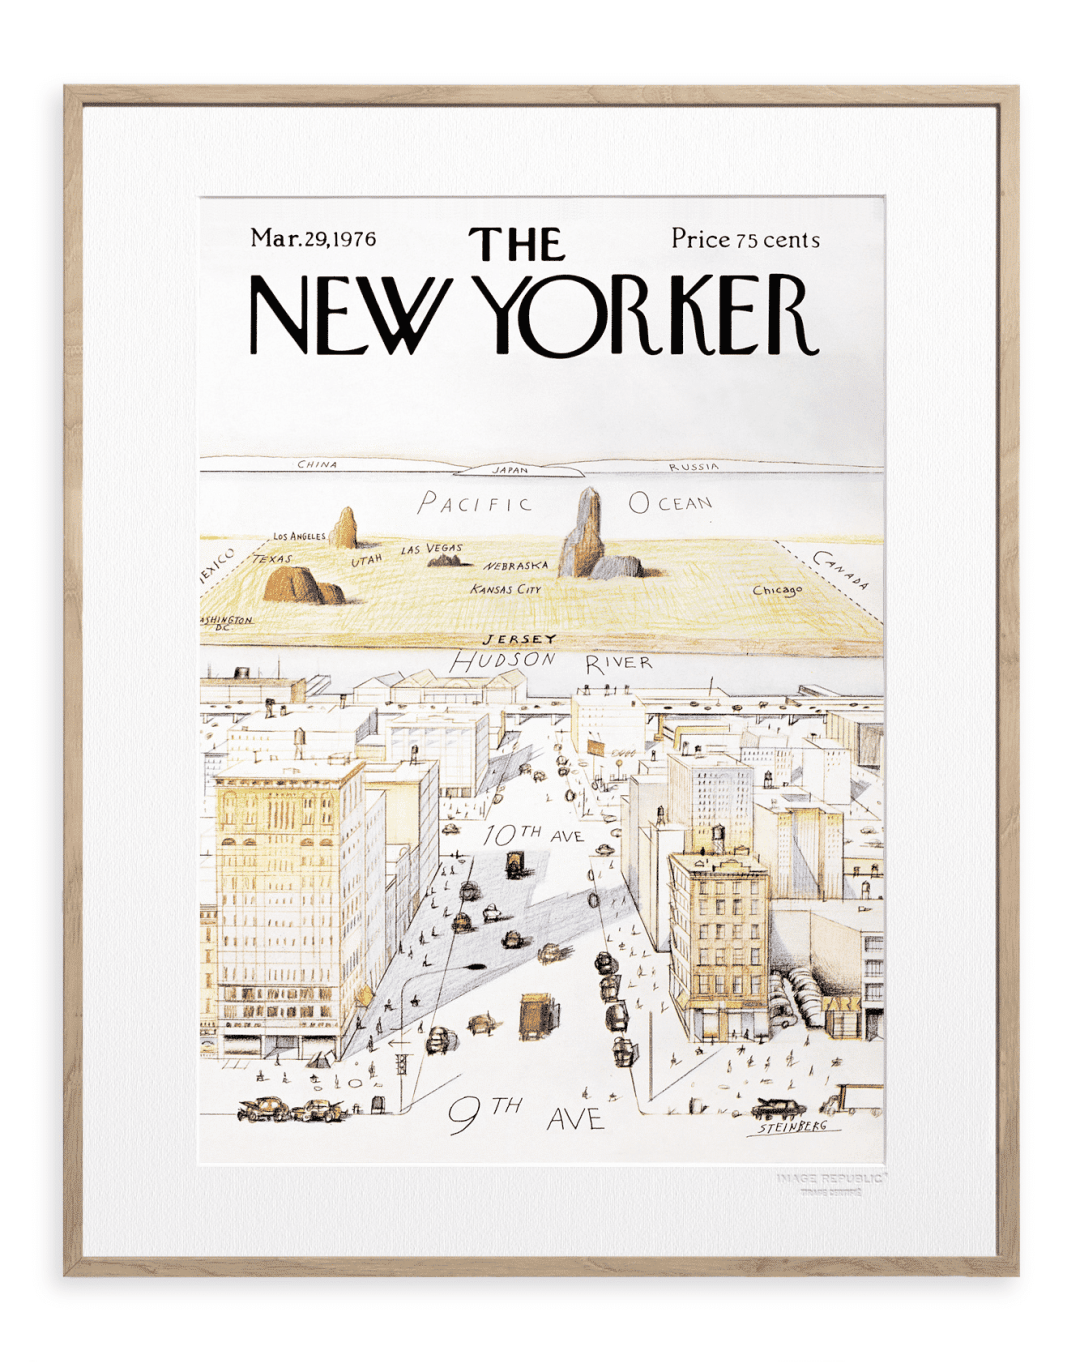 image republic.com837the newyorker 07 steinberg